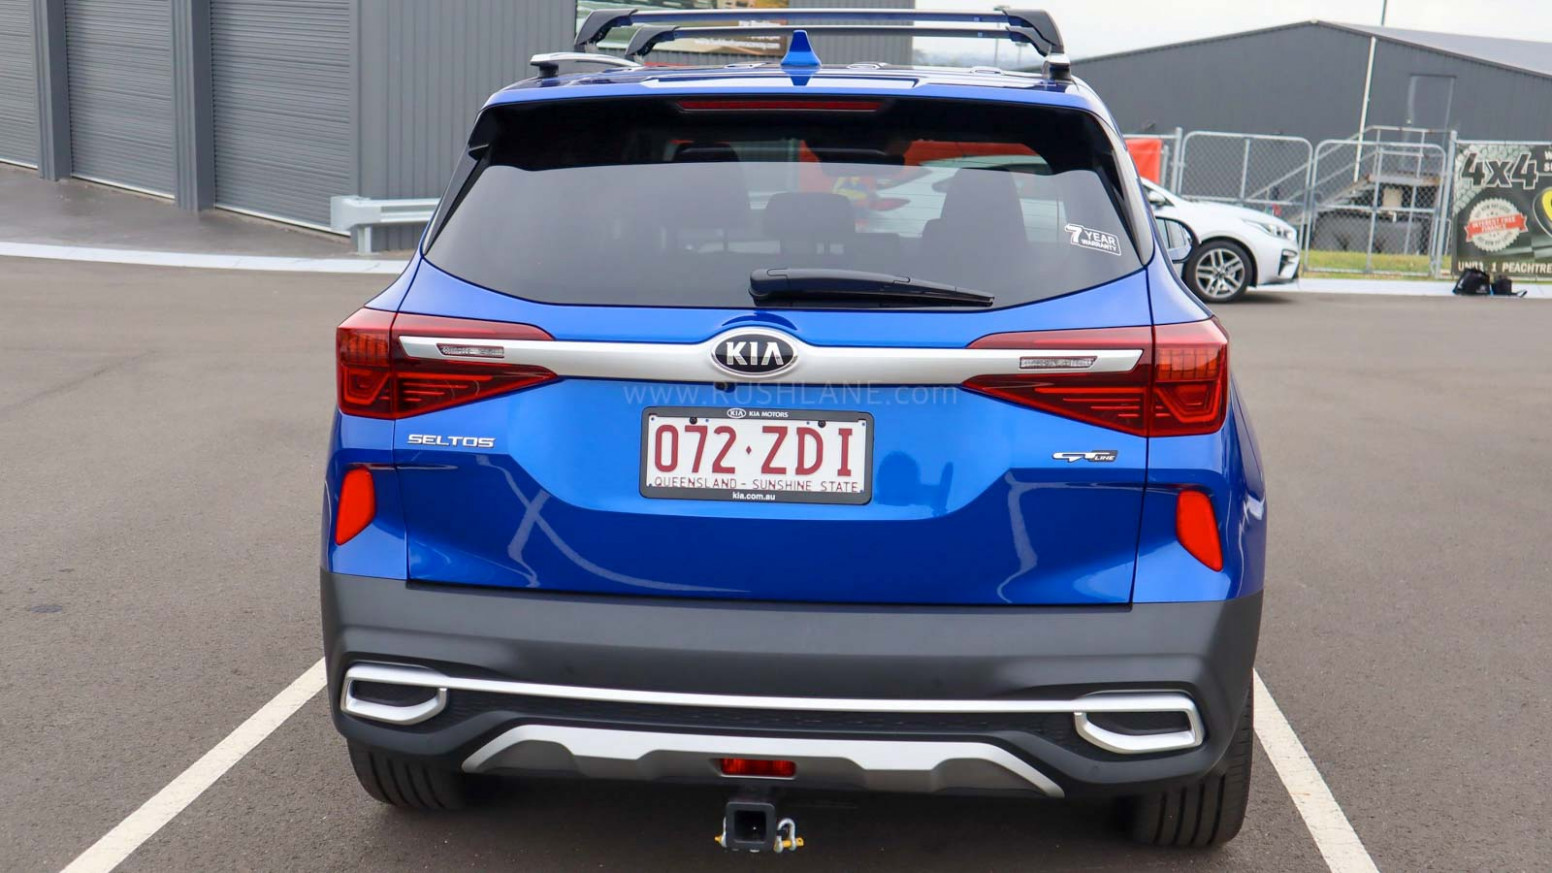 Kia Seltos electric SUV launch planned - Debut exp in 9 - kia electric cars in india 2020